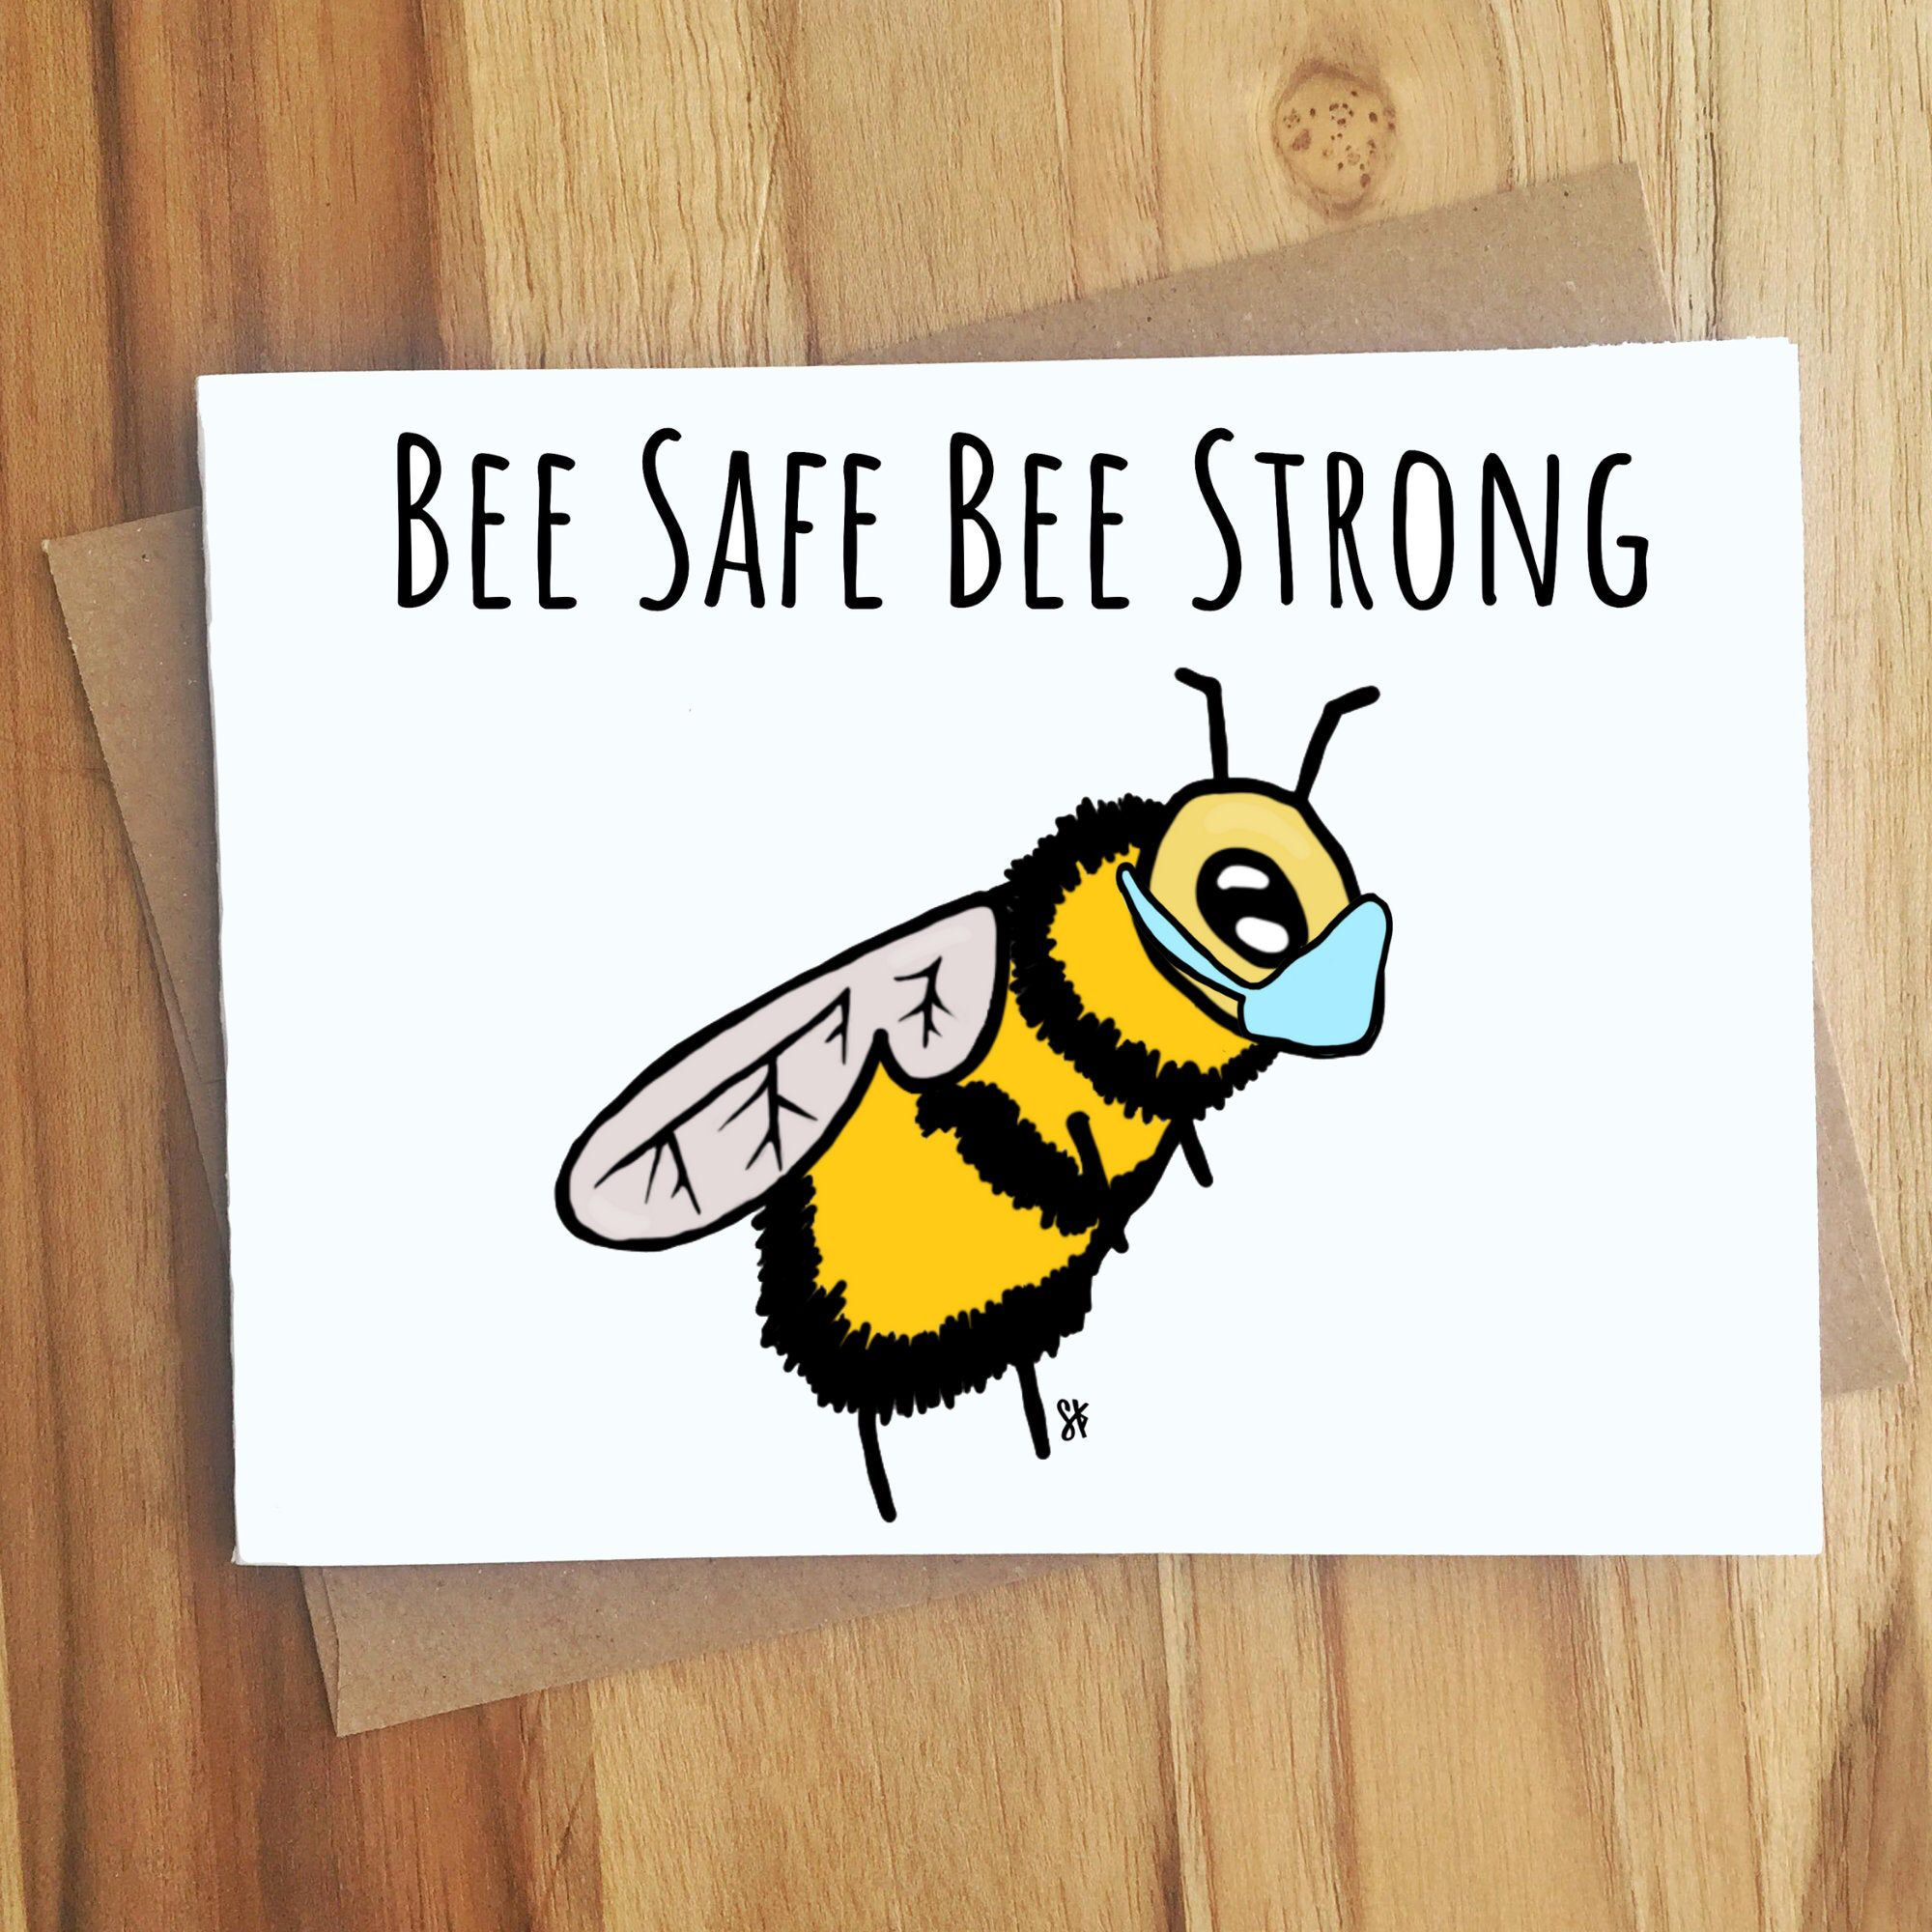 Bee Safe Bee Strong Bee Pun Greeting Card Play On Words All Occassion Funny Punny Puns Friendship Thinking Of You Safe Distance Bee Puns Bee Safe Bee Quotes